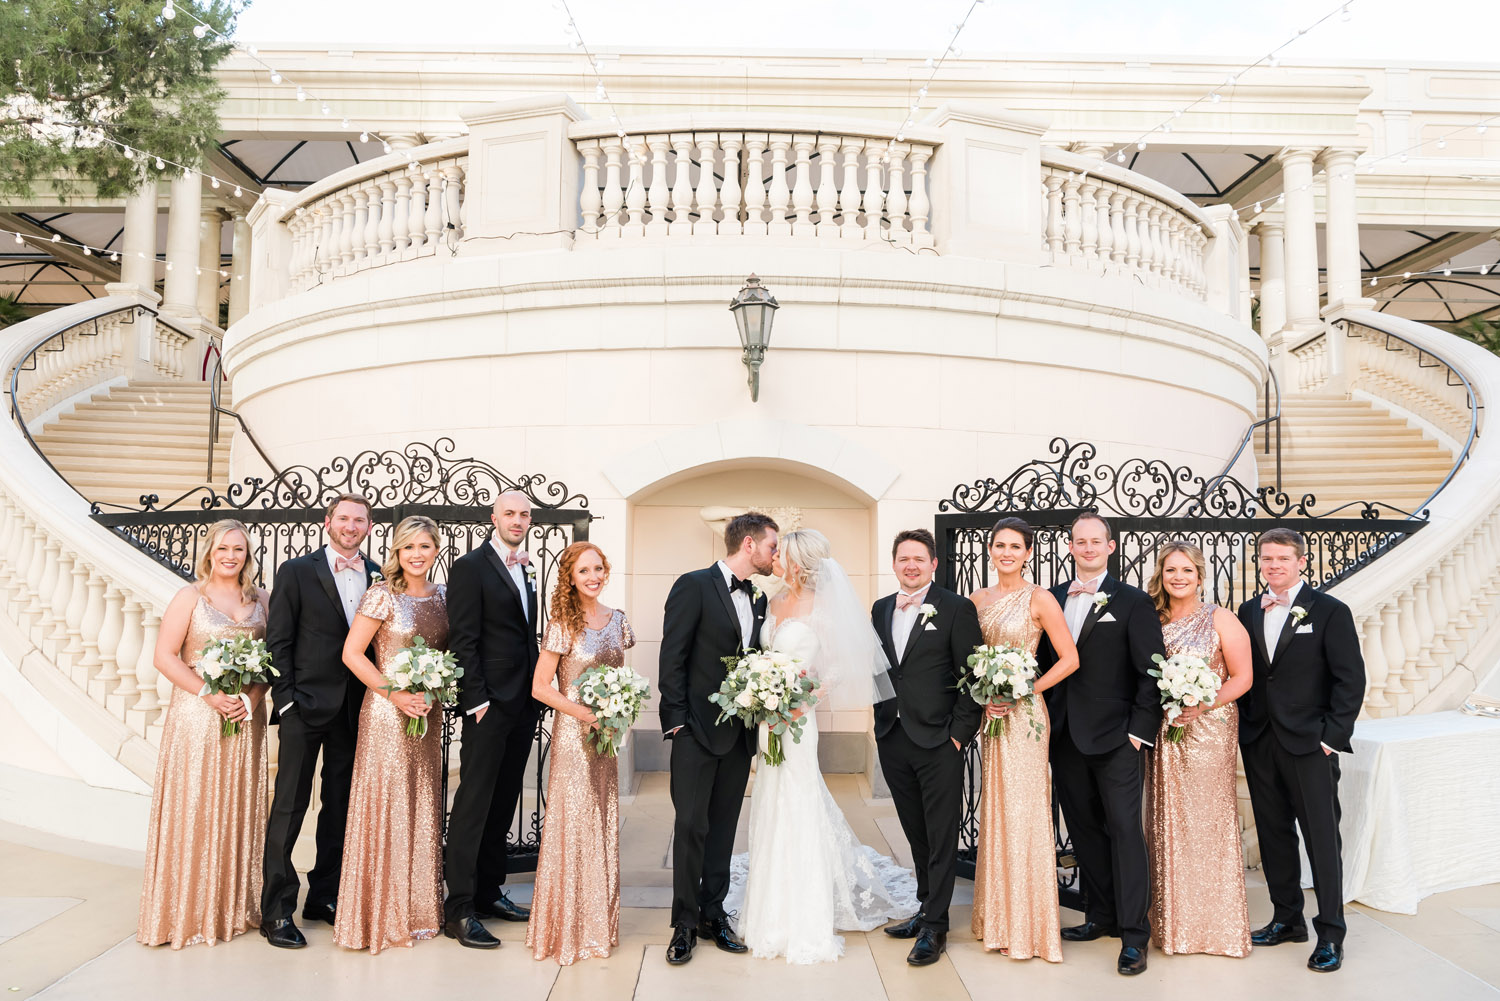 Bellagio Las Vegas Wedding | Kristen Marie Weddings + Portraits, Las Vegas wedding photographer